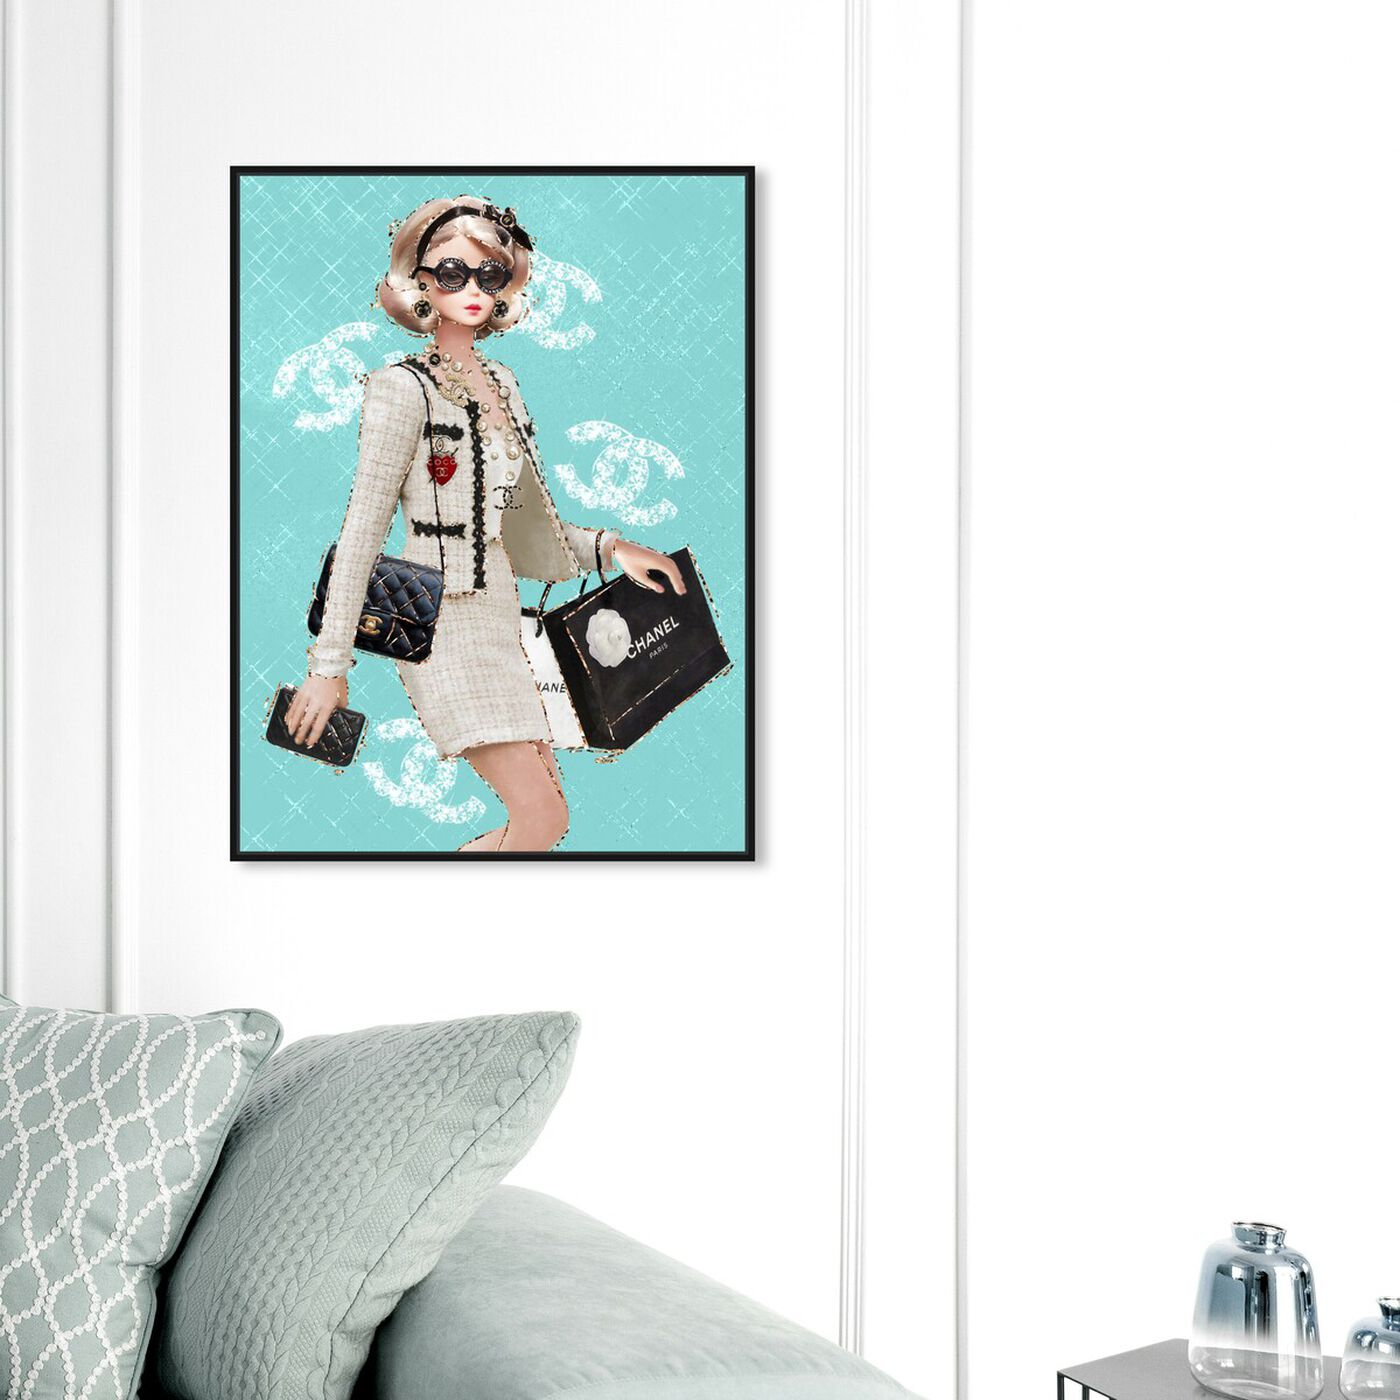 Hanging view of Breakfast Where? featuring fashion and glam and dolls art.